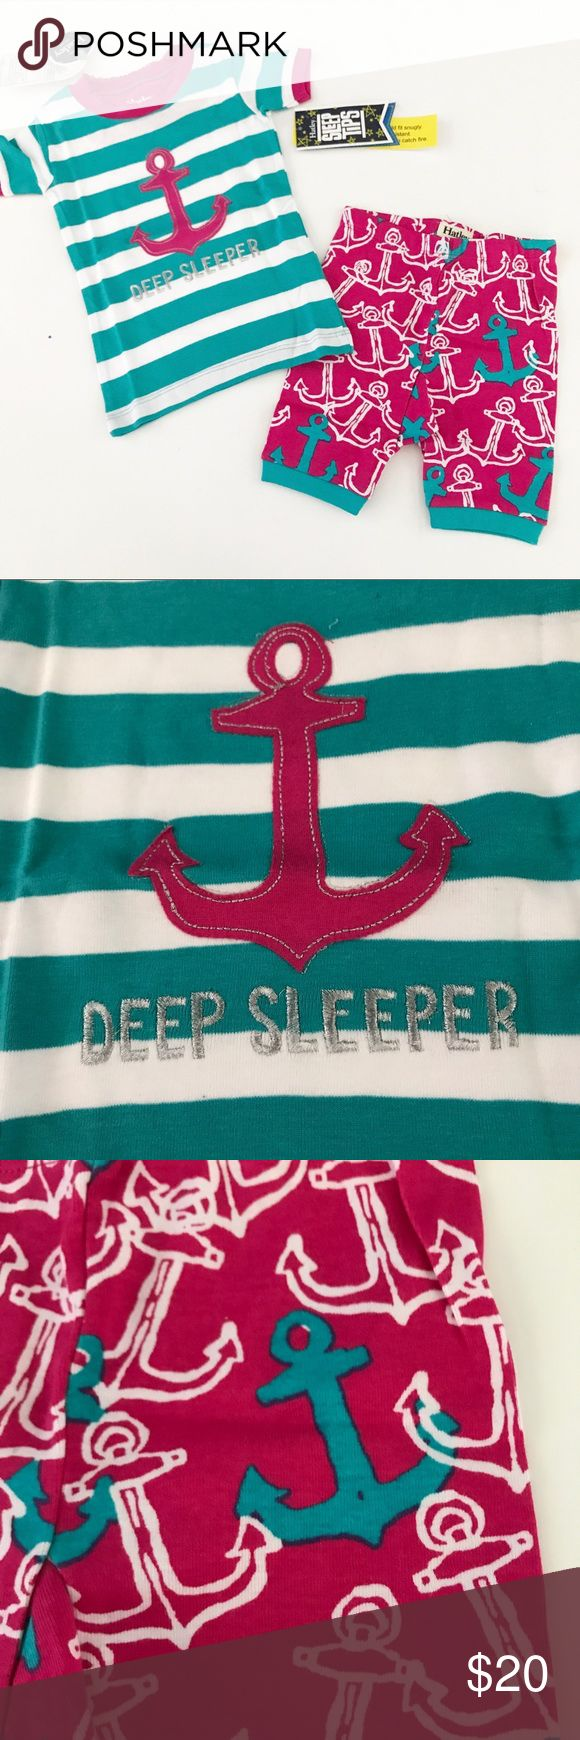 NWT! Hayley nautical Pajamas Brand new! Striped top with stitched on anchor and pink bottoms with white and Turquoise anchors Hatley Pajamas Pajama Sets